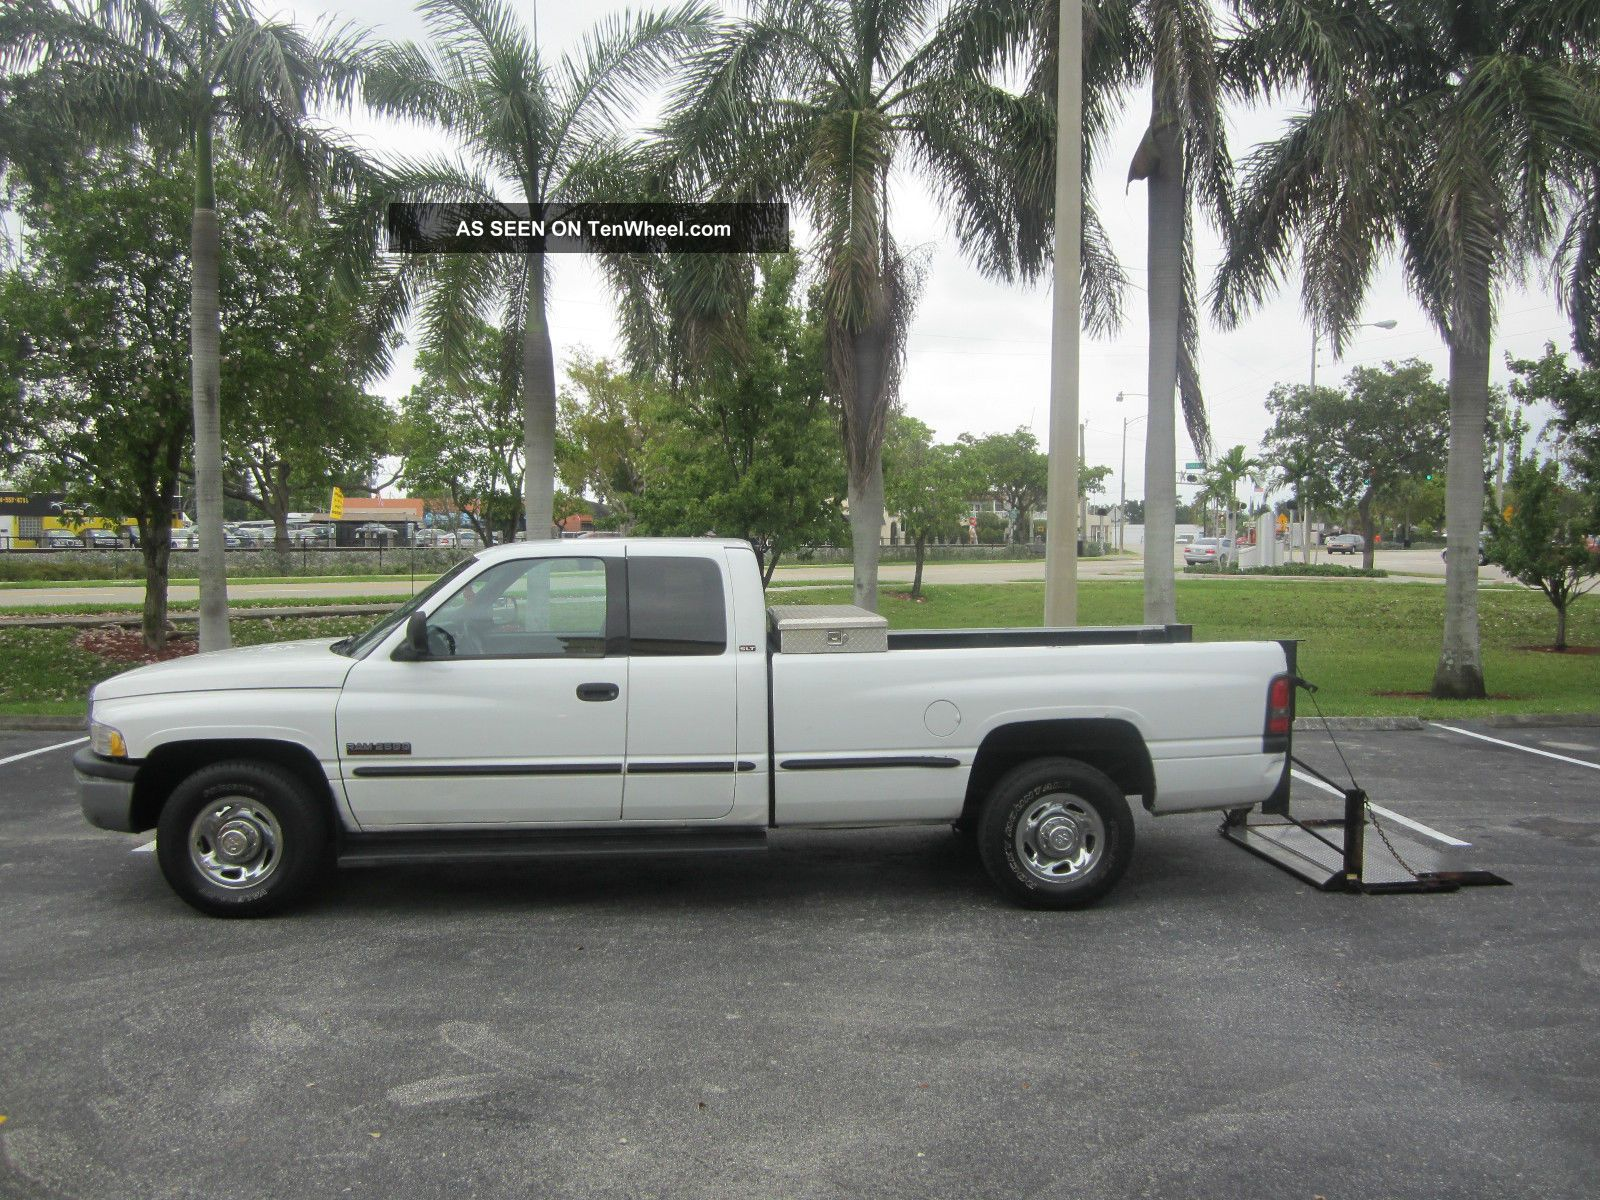 hight resolution of 1998 dodge ram 2500 laramie slt x cab with lift gate cummins diesel make offer